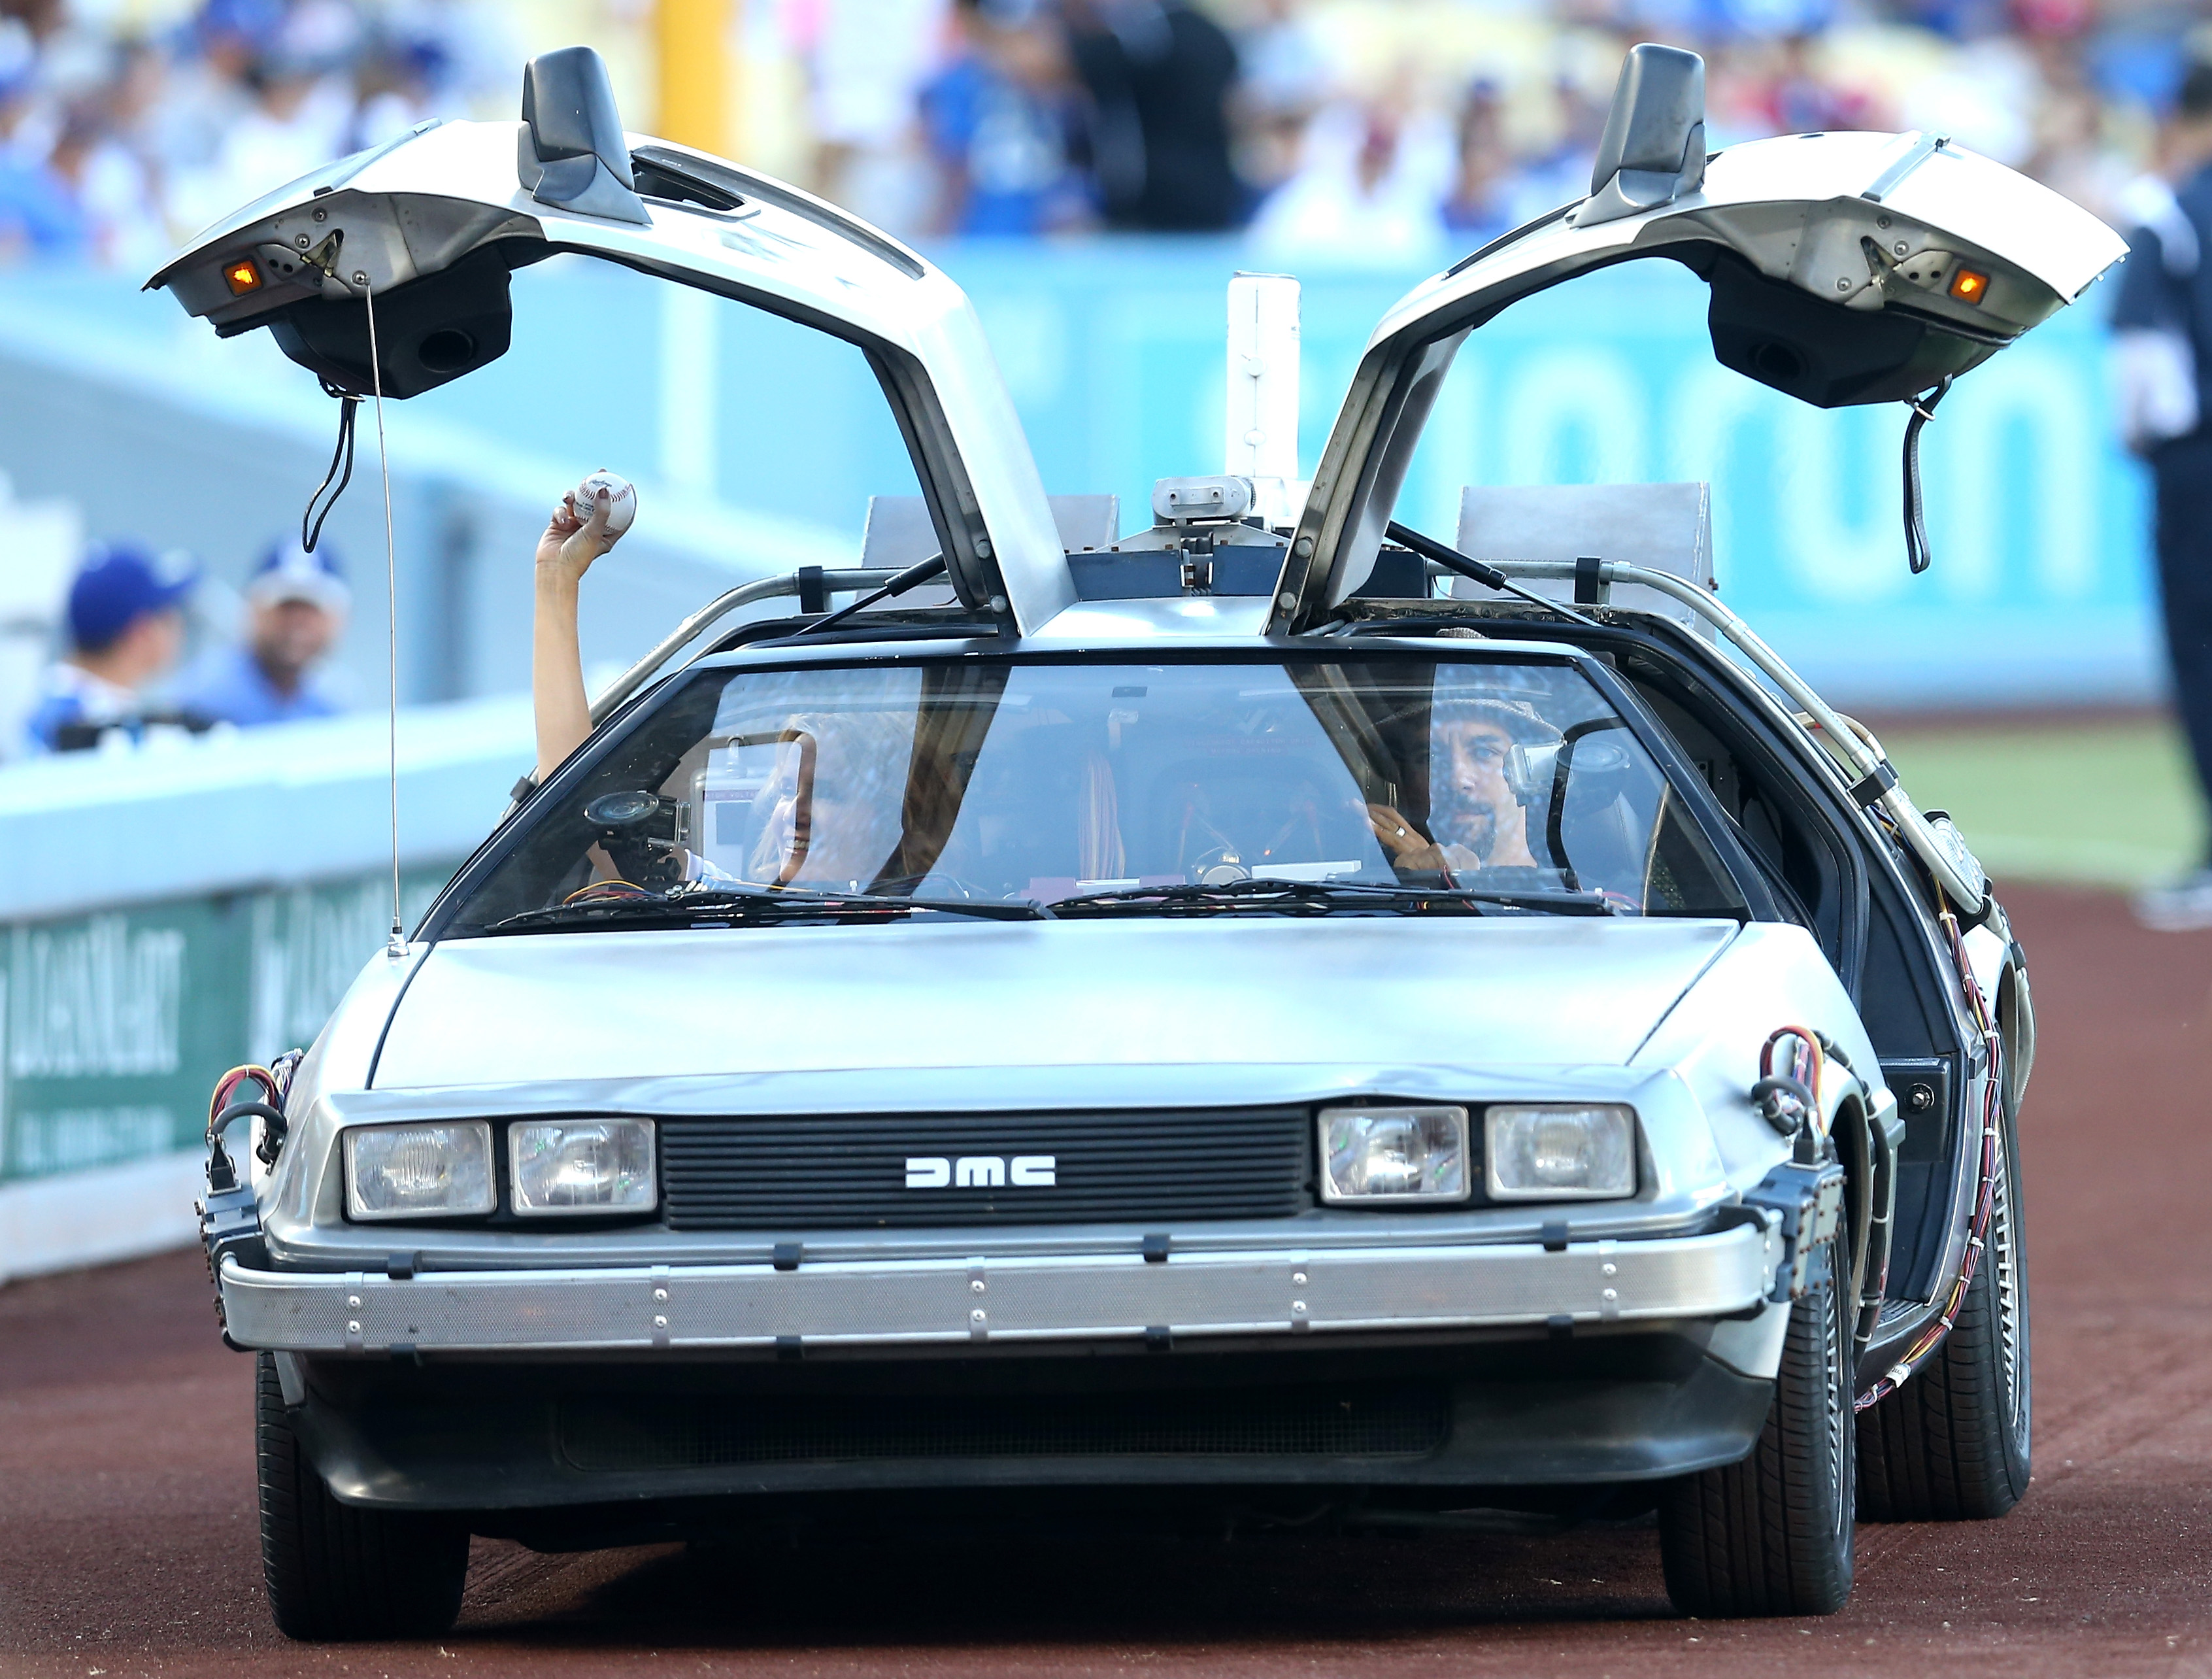 Actress Lea Thompson arrives in a DeLorean to throw out the first pitch before the game between the Cincinnati Reds and the Los Angeles Dodgers at Dodger Stadium on August 15, 2015 in Los Angeles, California, ahead of the after game showing of Back to Future on the stadium video boards.